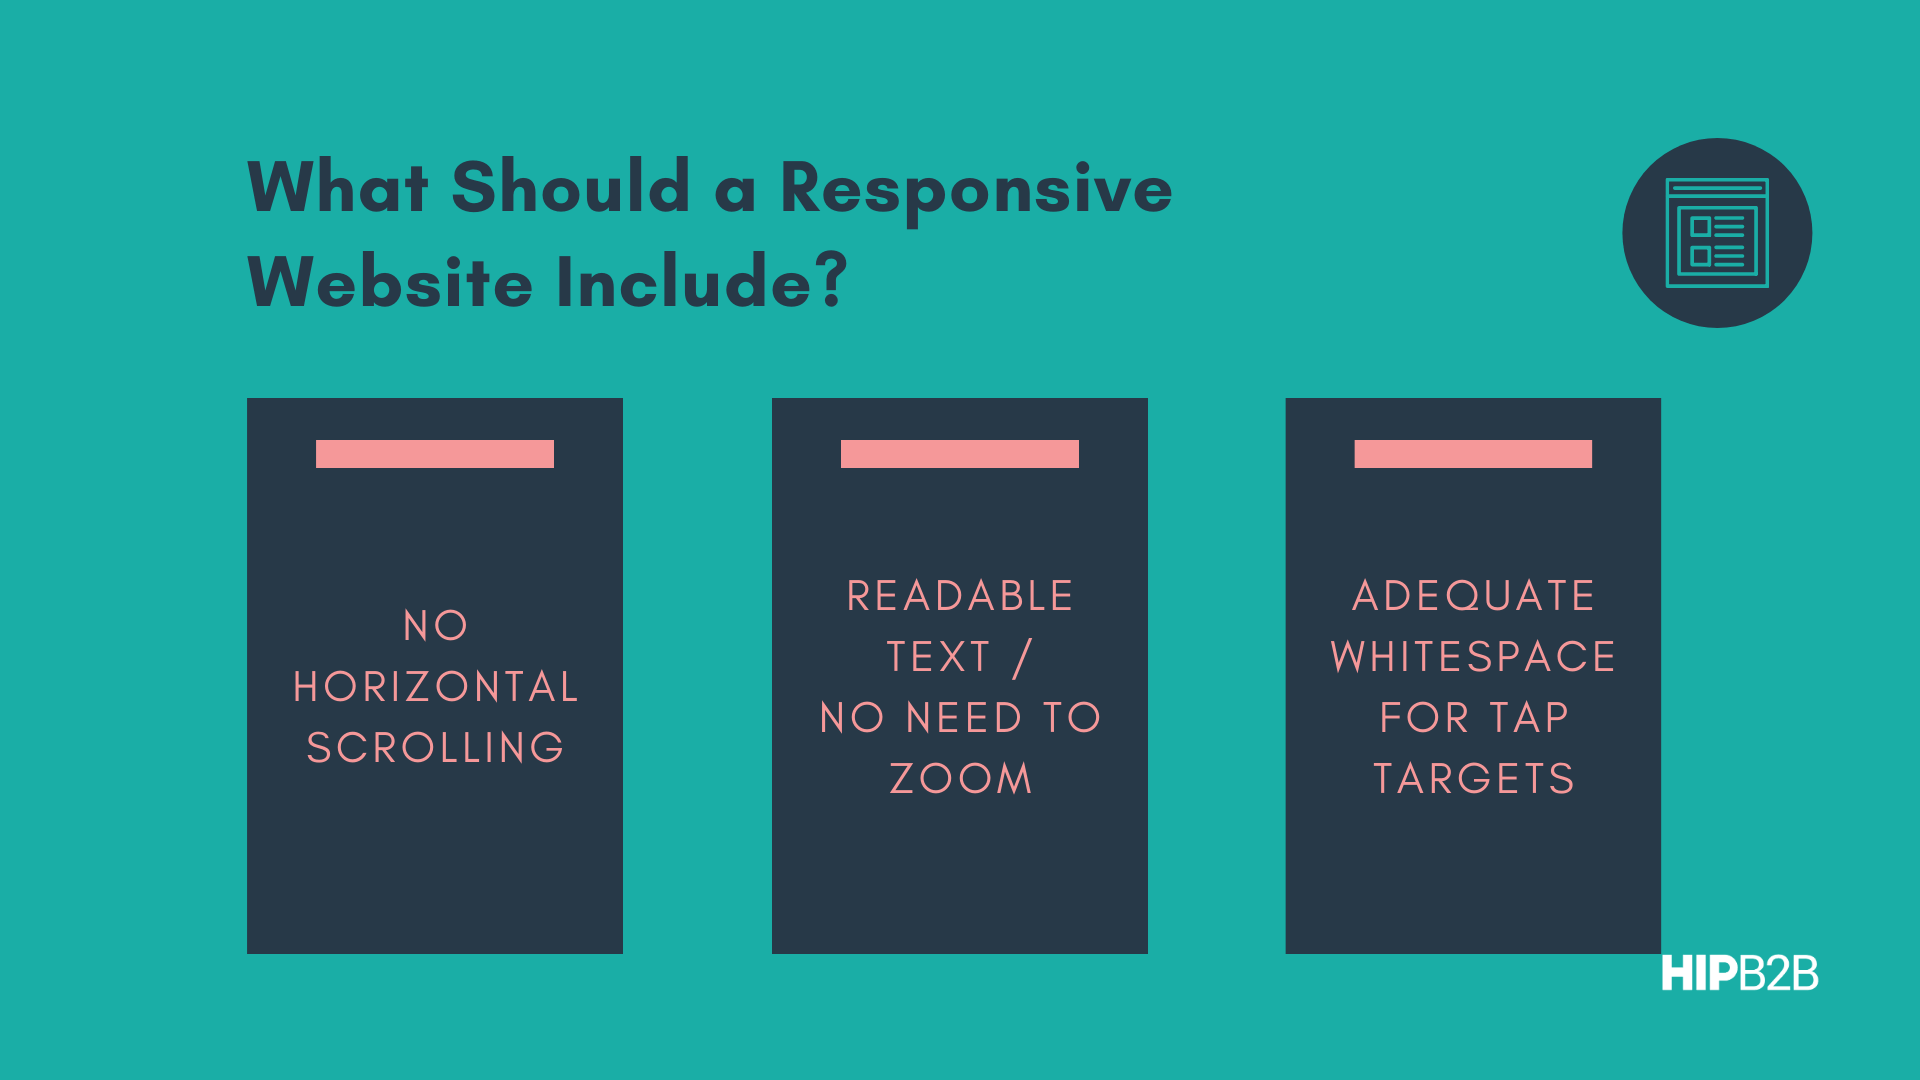 What Should a Responsive Website Include?